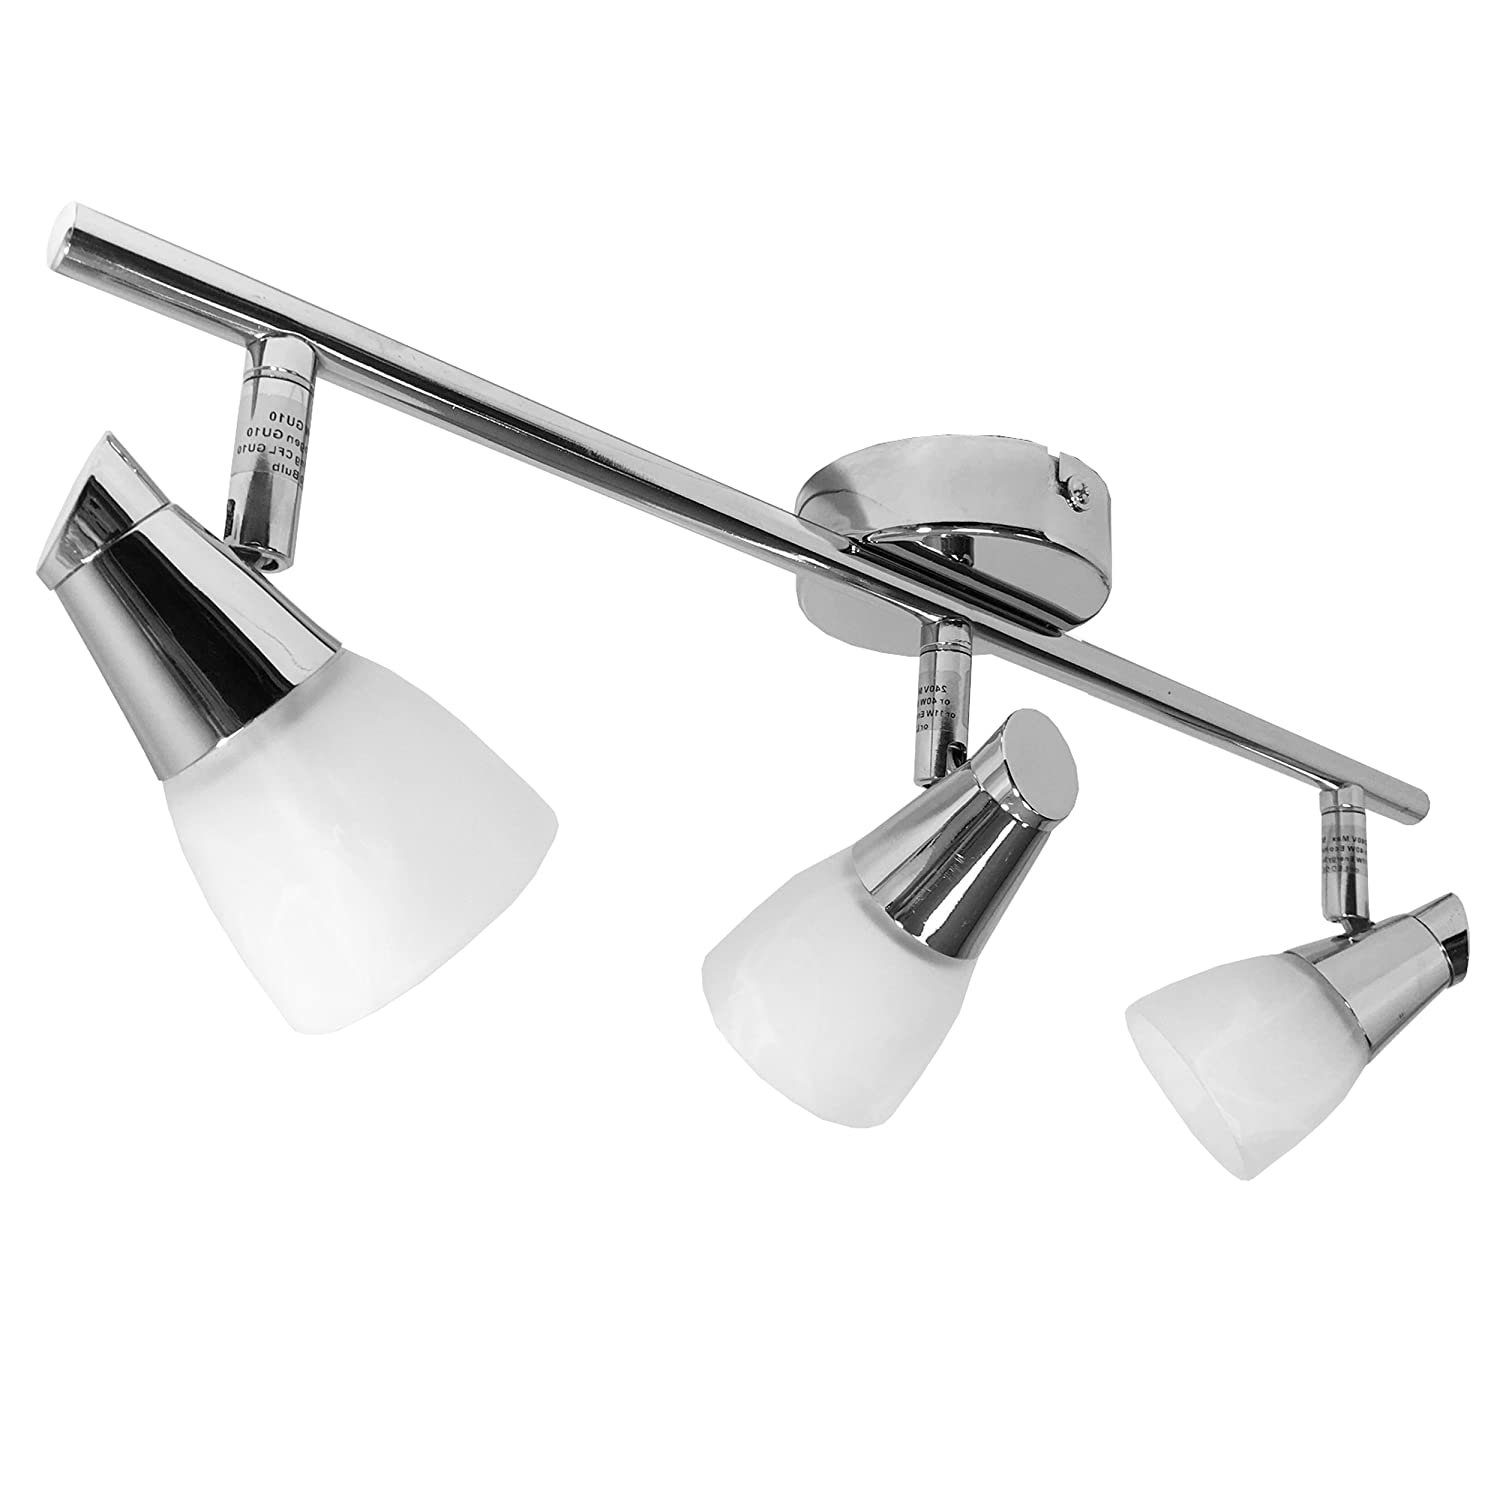 Adjustable Modern Chrome, LED Compatible GU10 Spotlight Bar Light Fitting with Decorative Patterned Opal Glass Shades (Single Head) Power